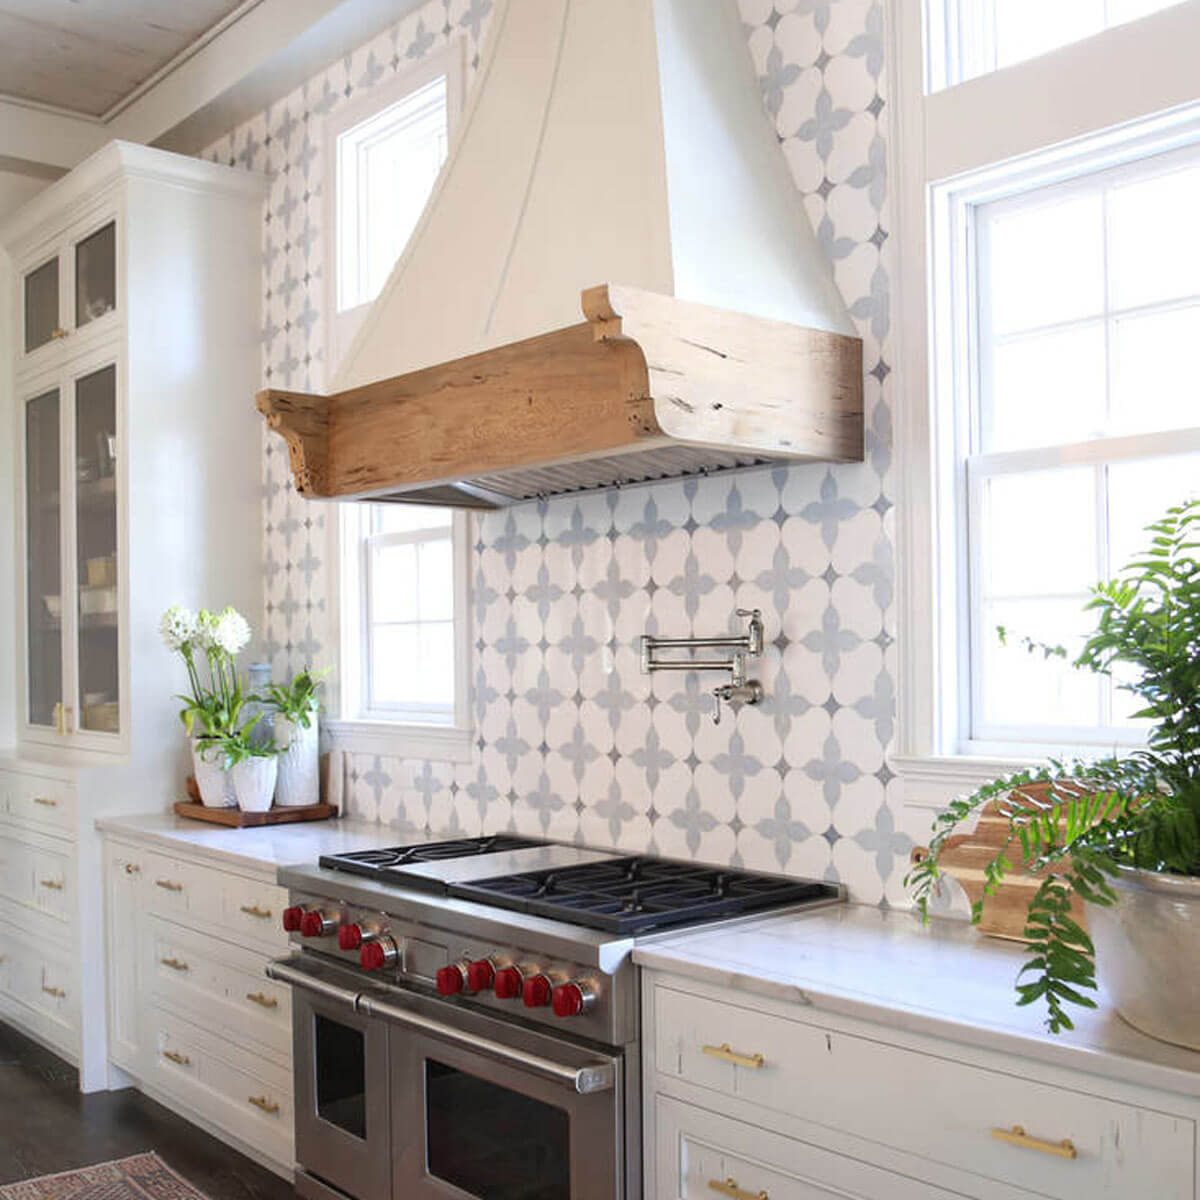 Add Value To Your Home With Tile!